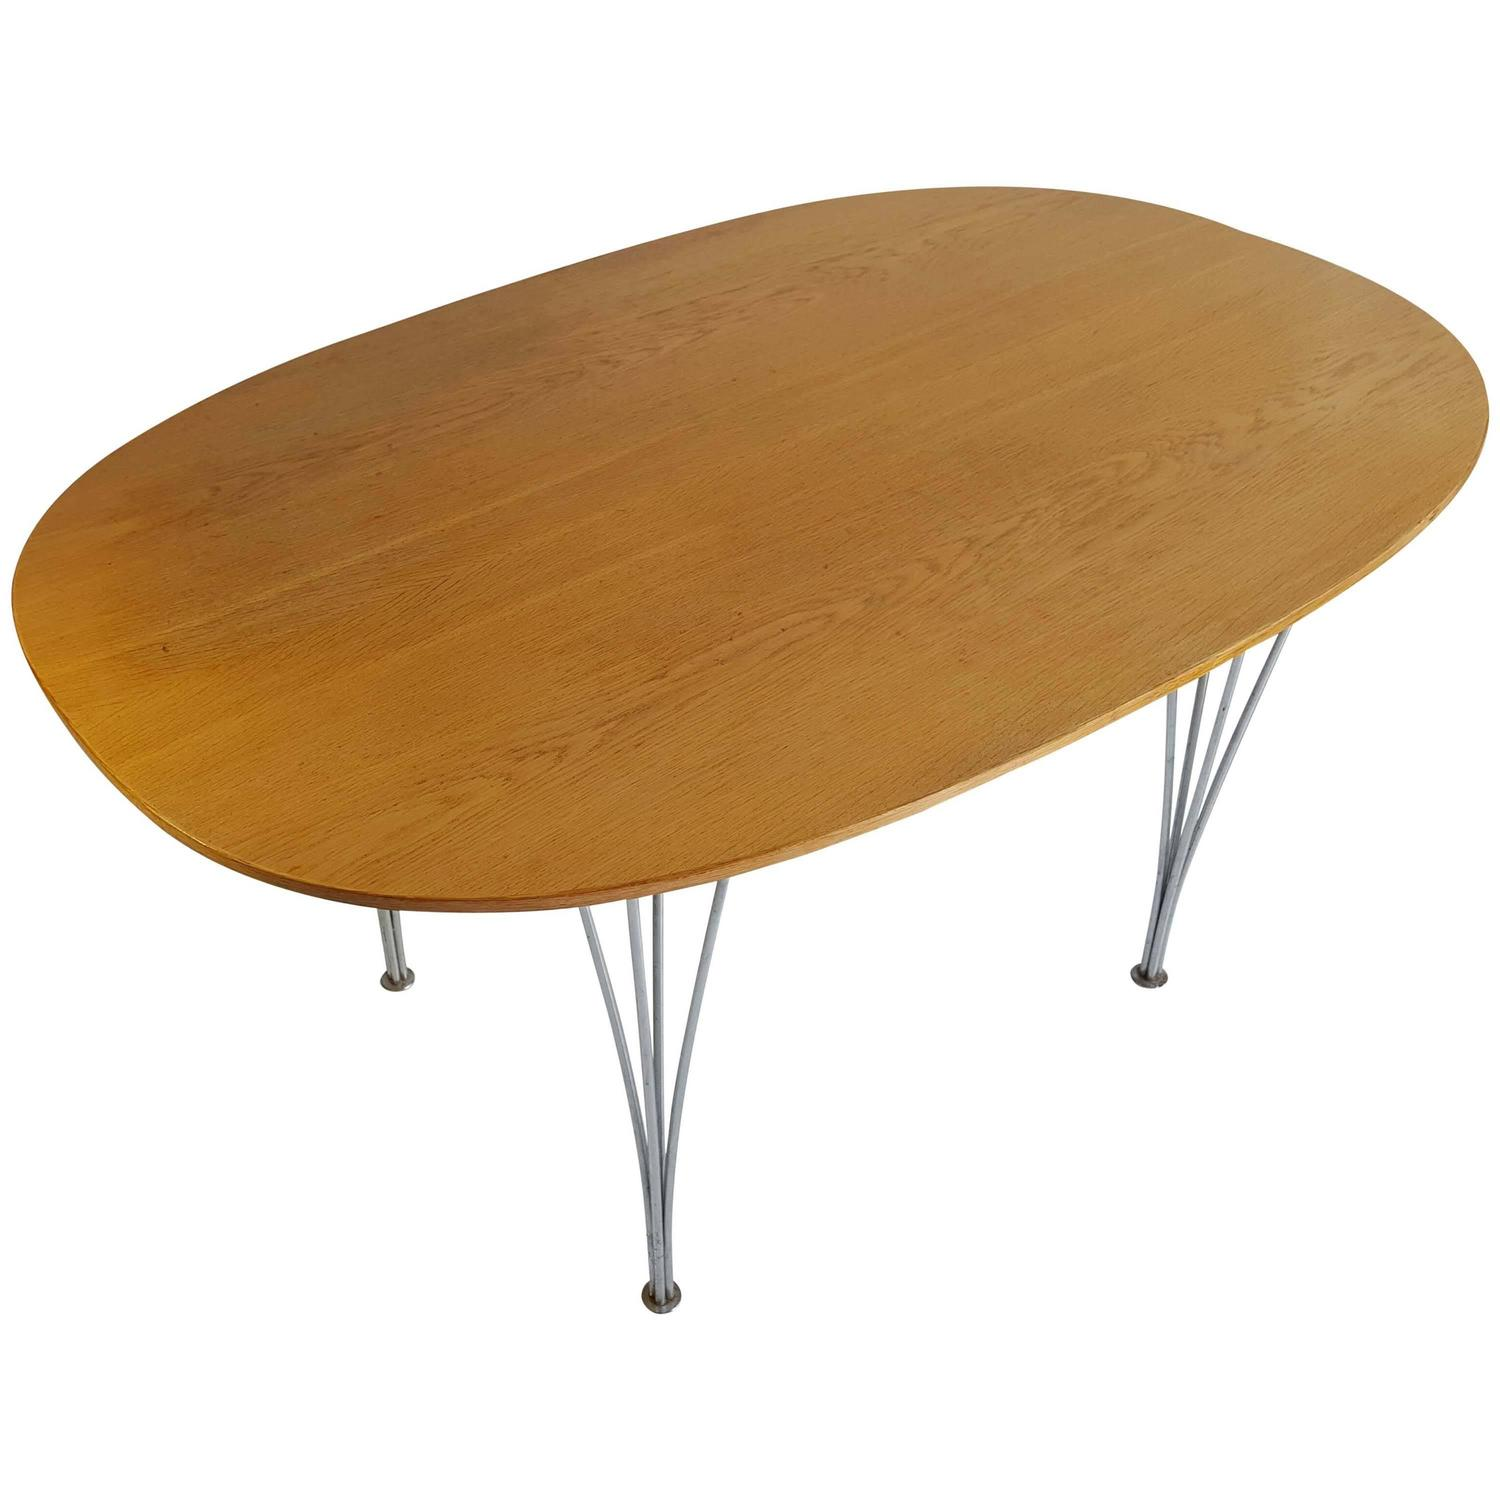 Super Ellipse Dining Table by Piet Hein and Bruno Mathsson For